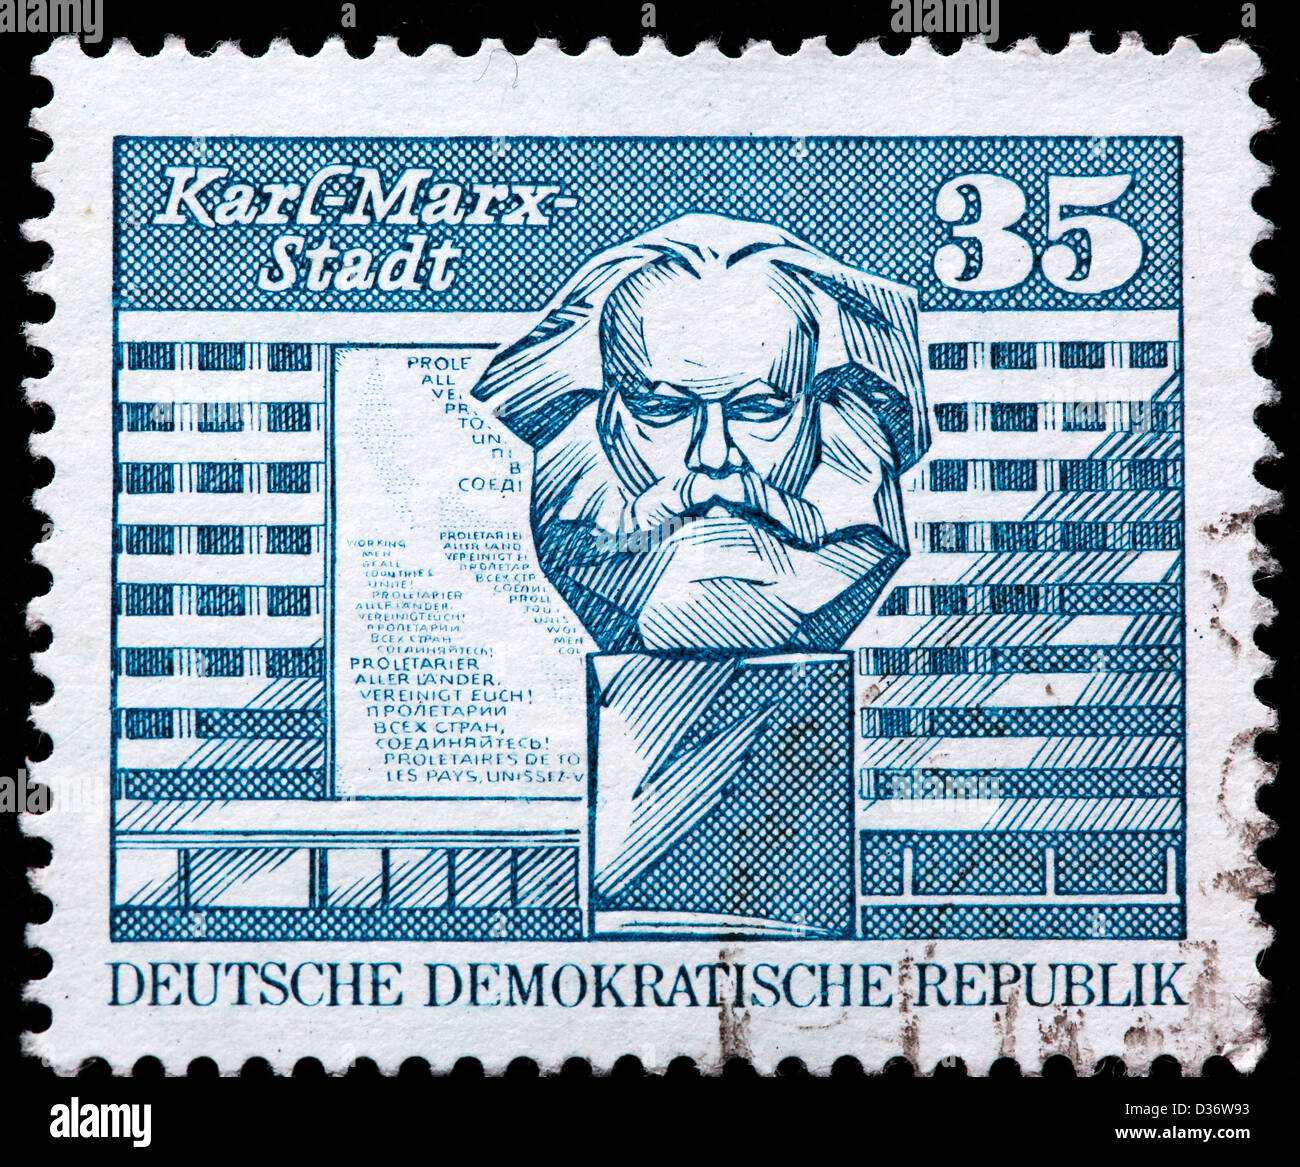 Marx monument, Karl-Marx-Stadt, postage stamp, Germany, 1973 - Stock Image